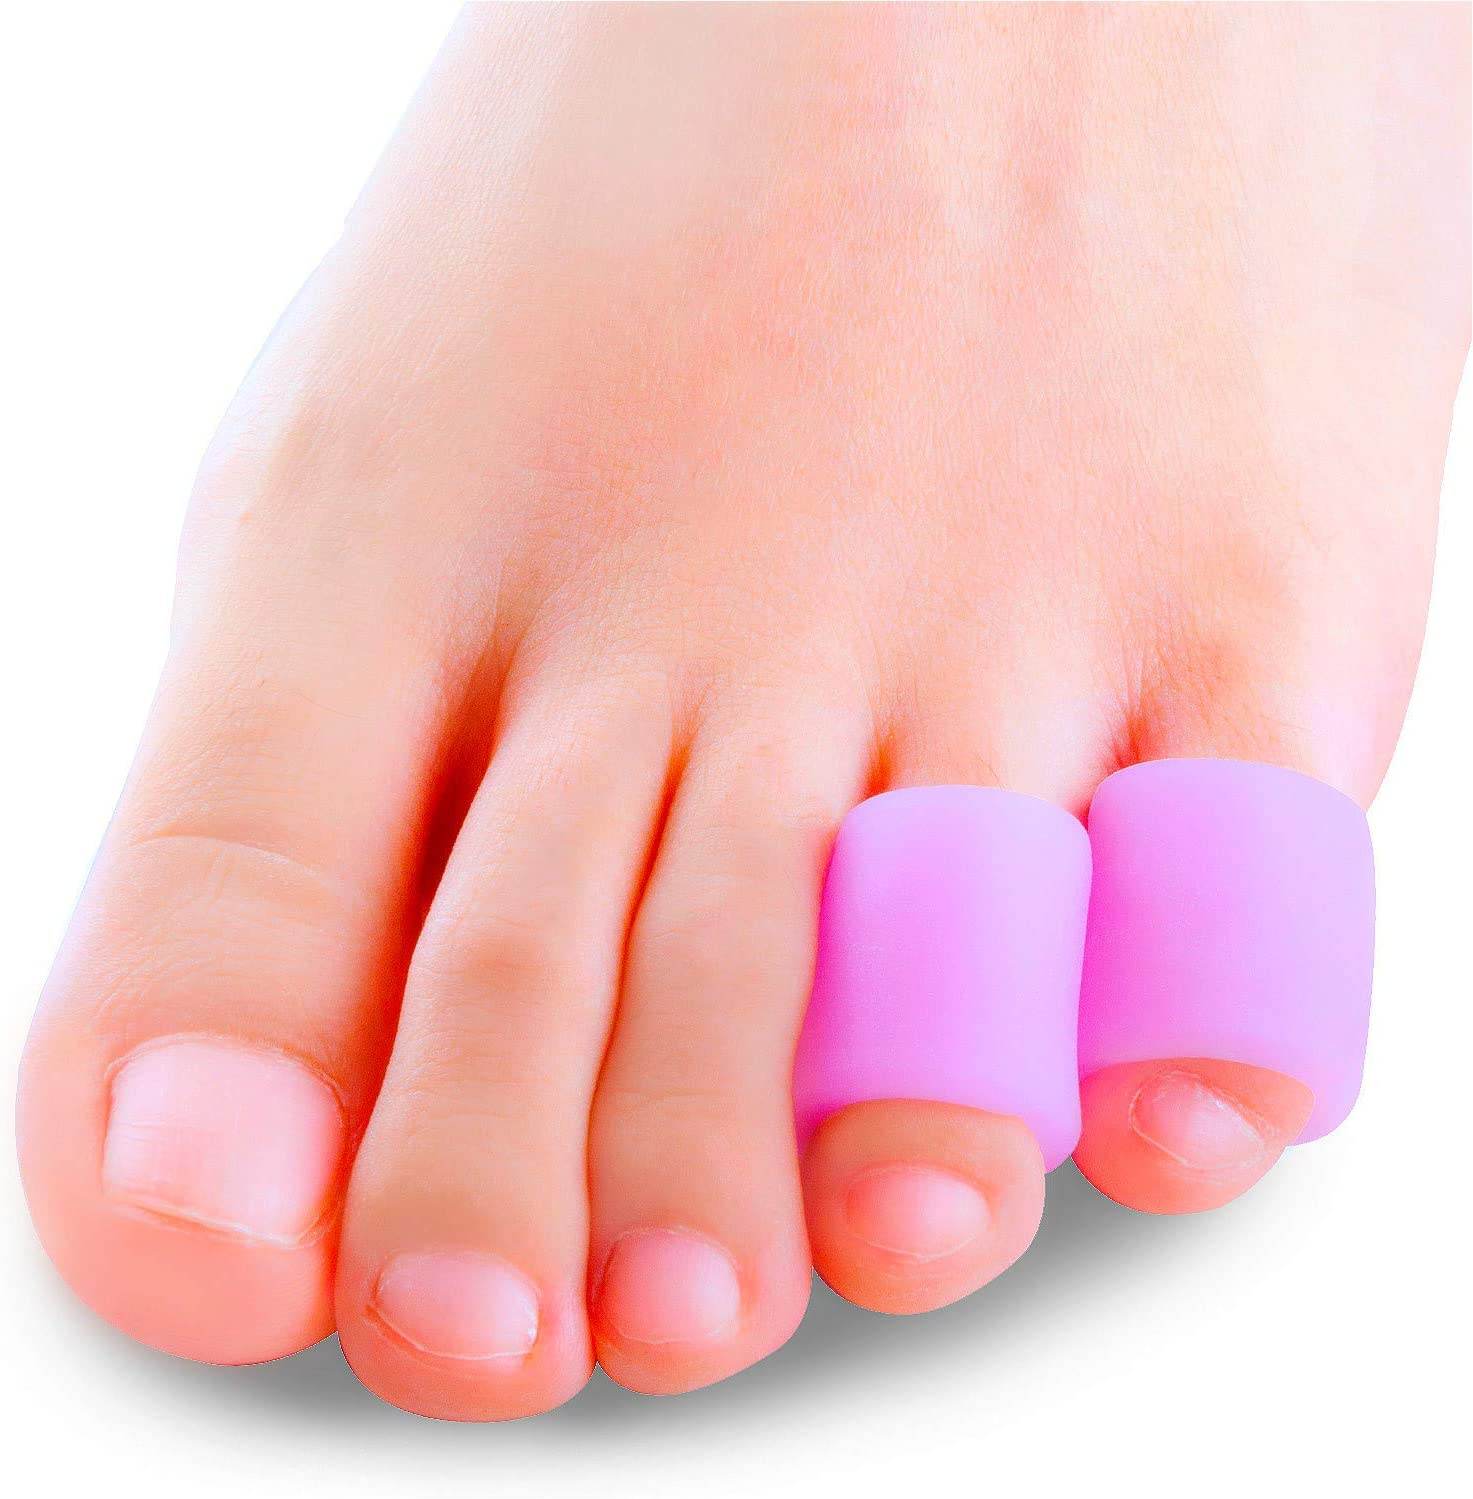 Povihome Toe Protectors, Toe Sleeves Silicone Small Gel Corn Protectors for Runners,Blisters,Shoes,Heels,Sandal Purple Pinky Toe Pain Relief 5 Pairs